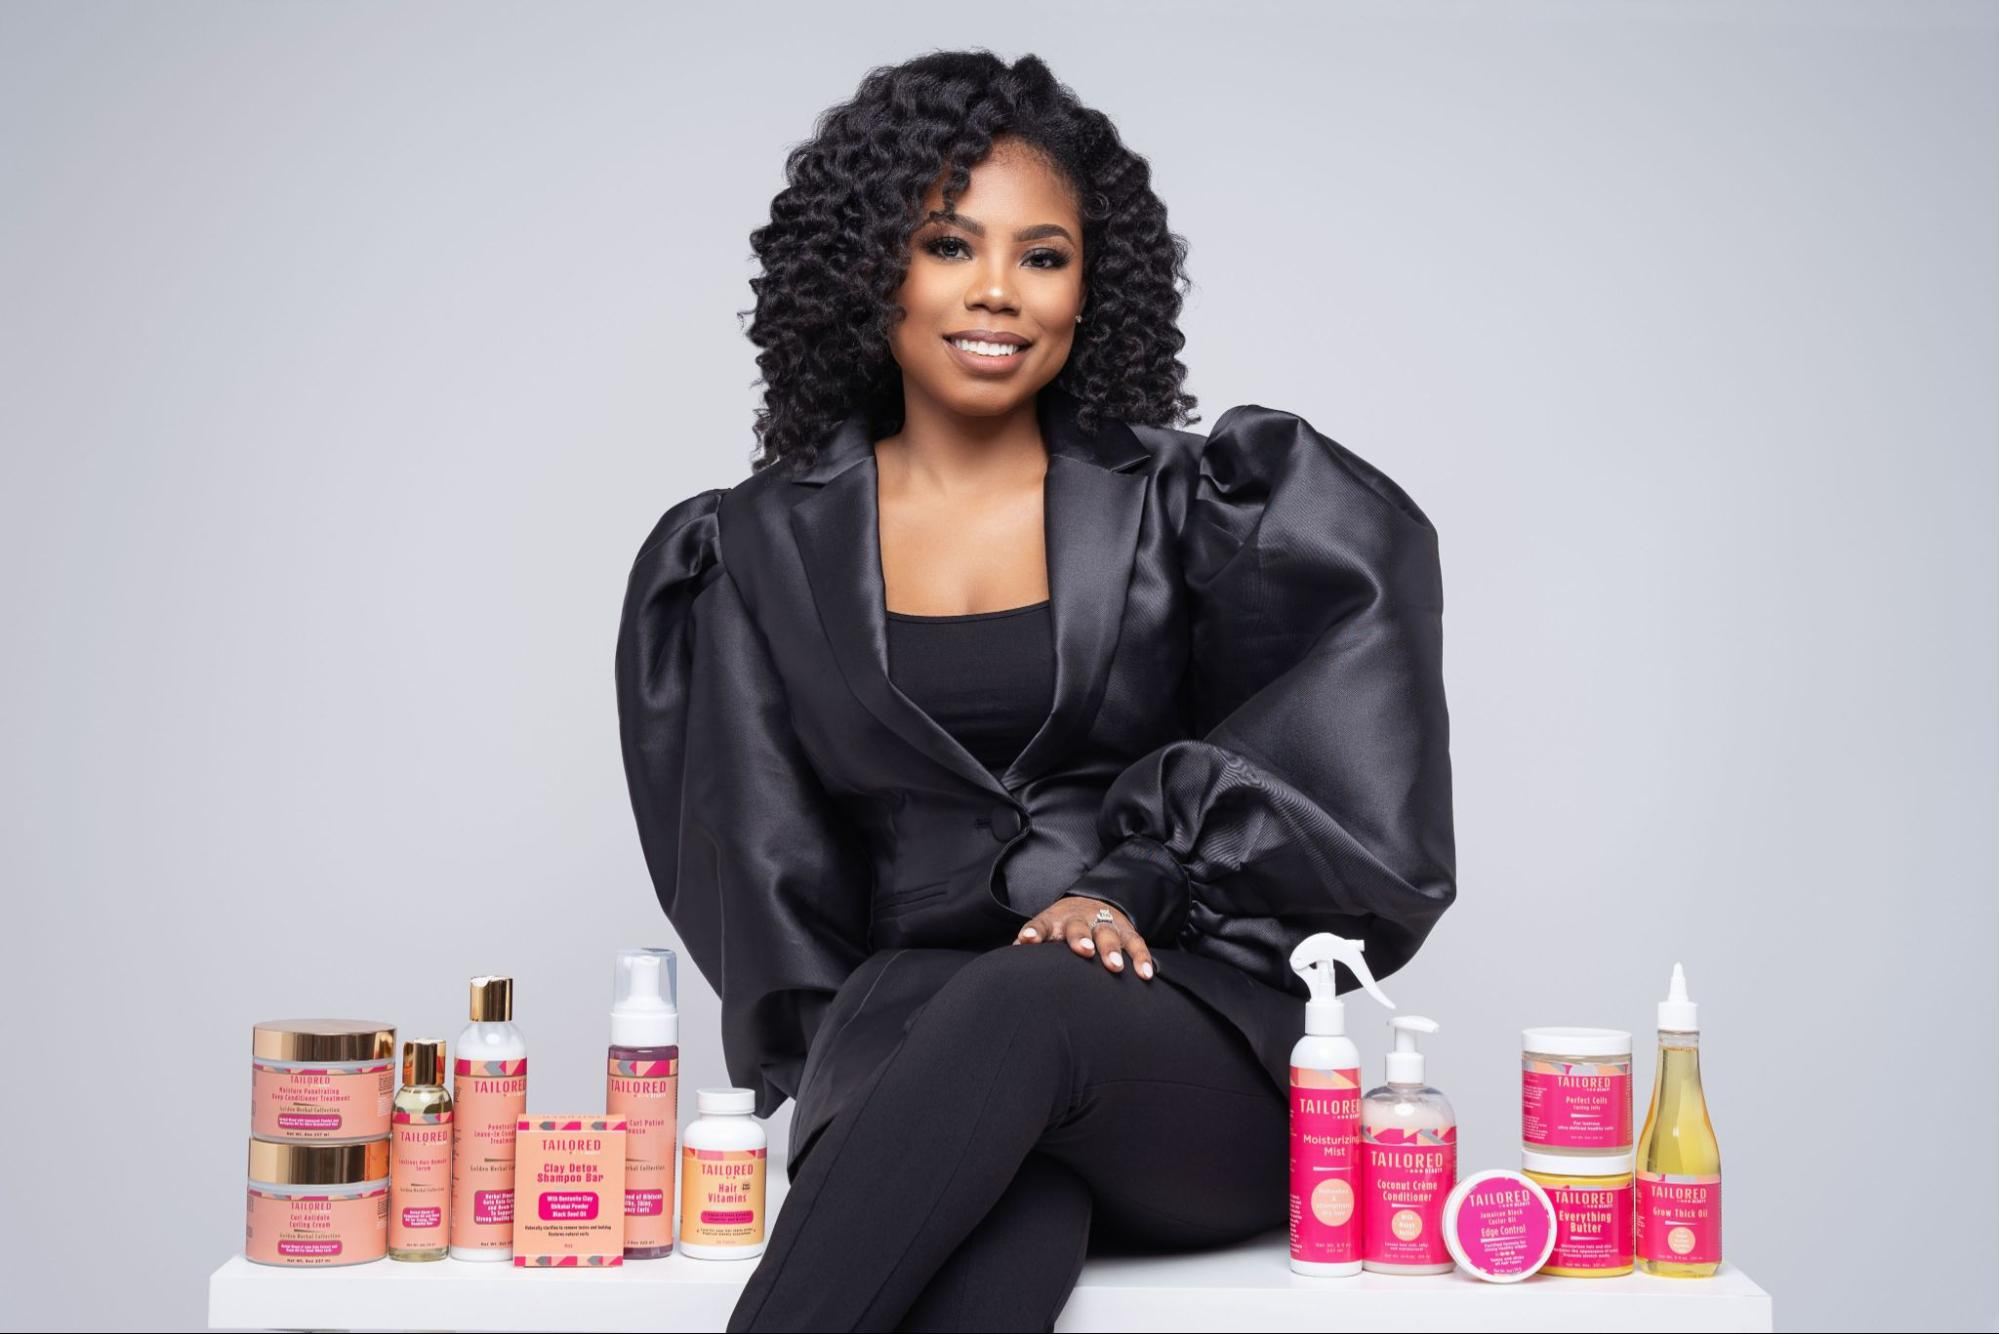 Kera James in an all black outfit along with some Tailored Beauty products.